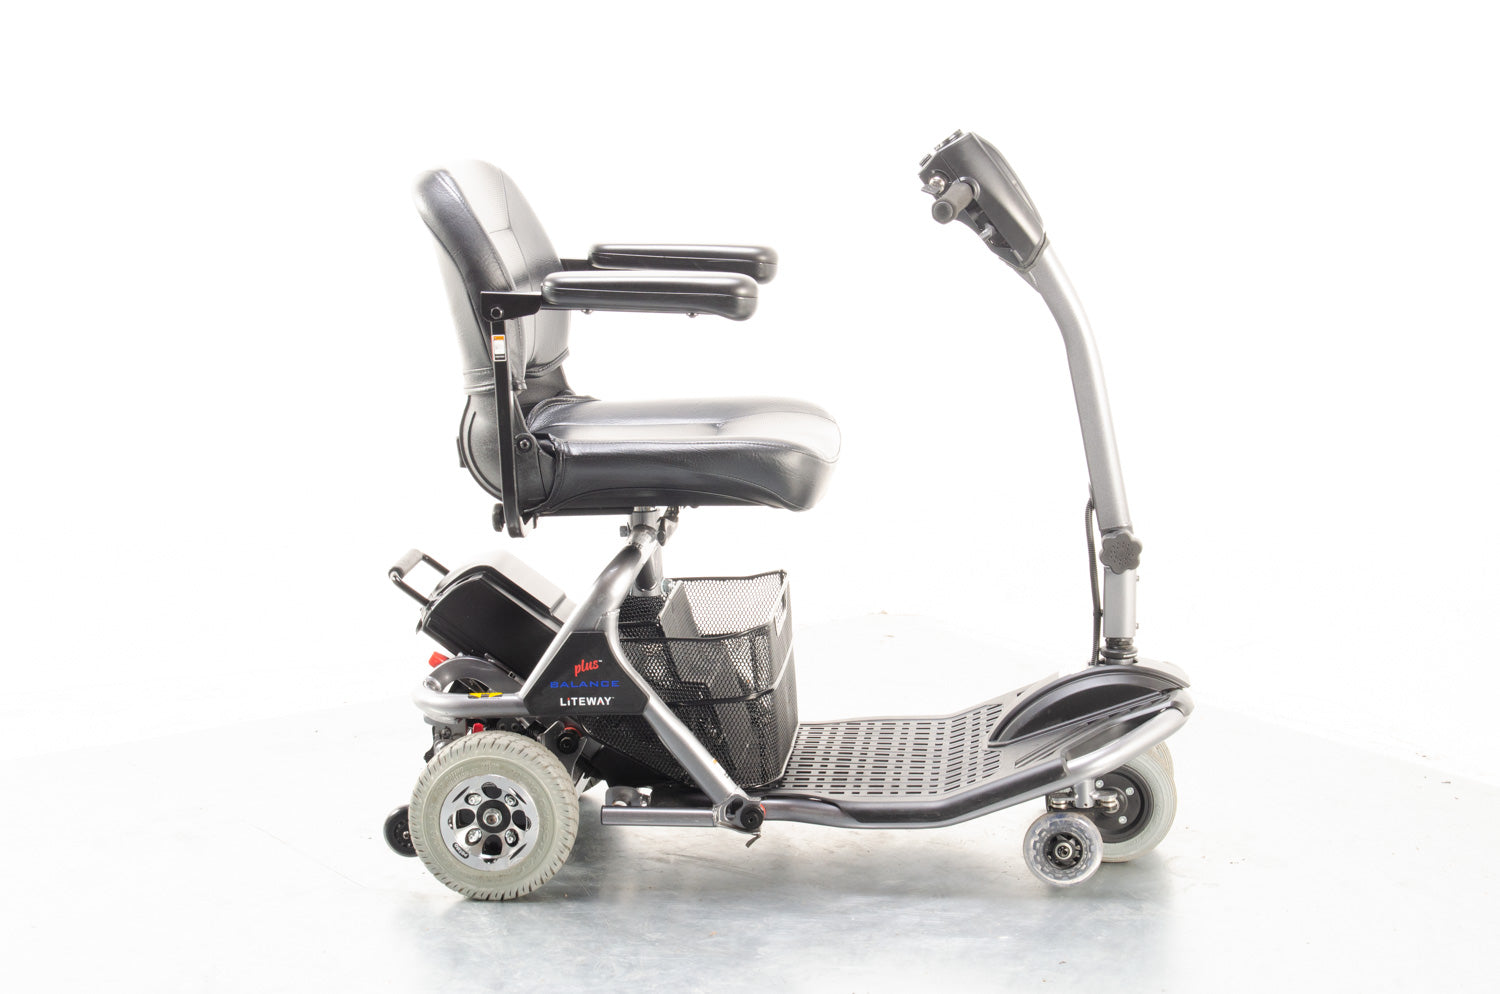 2018 Rascal Liteway Balance Plus Electric Mobility Scooter Used Second Hand 4mph Mobility Scooter Transportable 6 Wheel Boot Graphite Grey